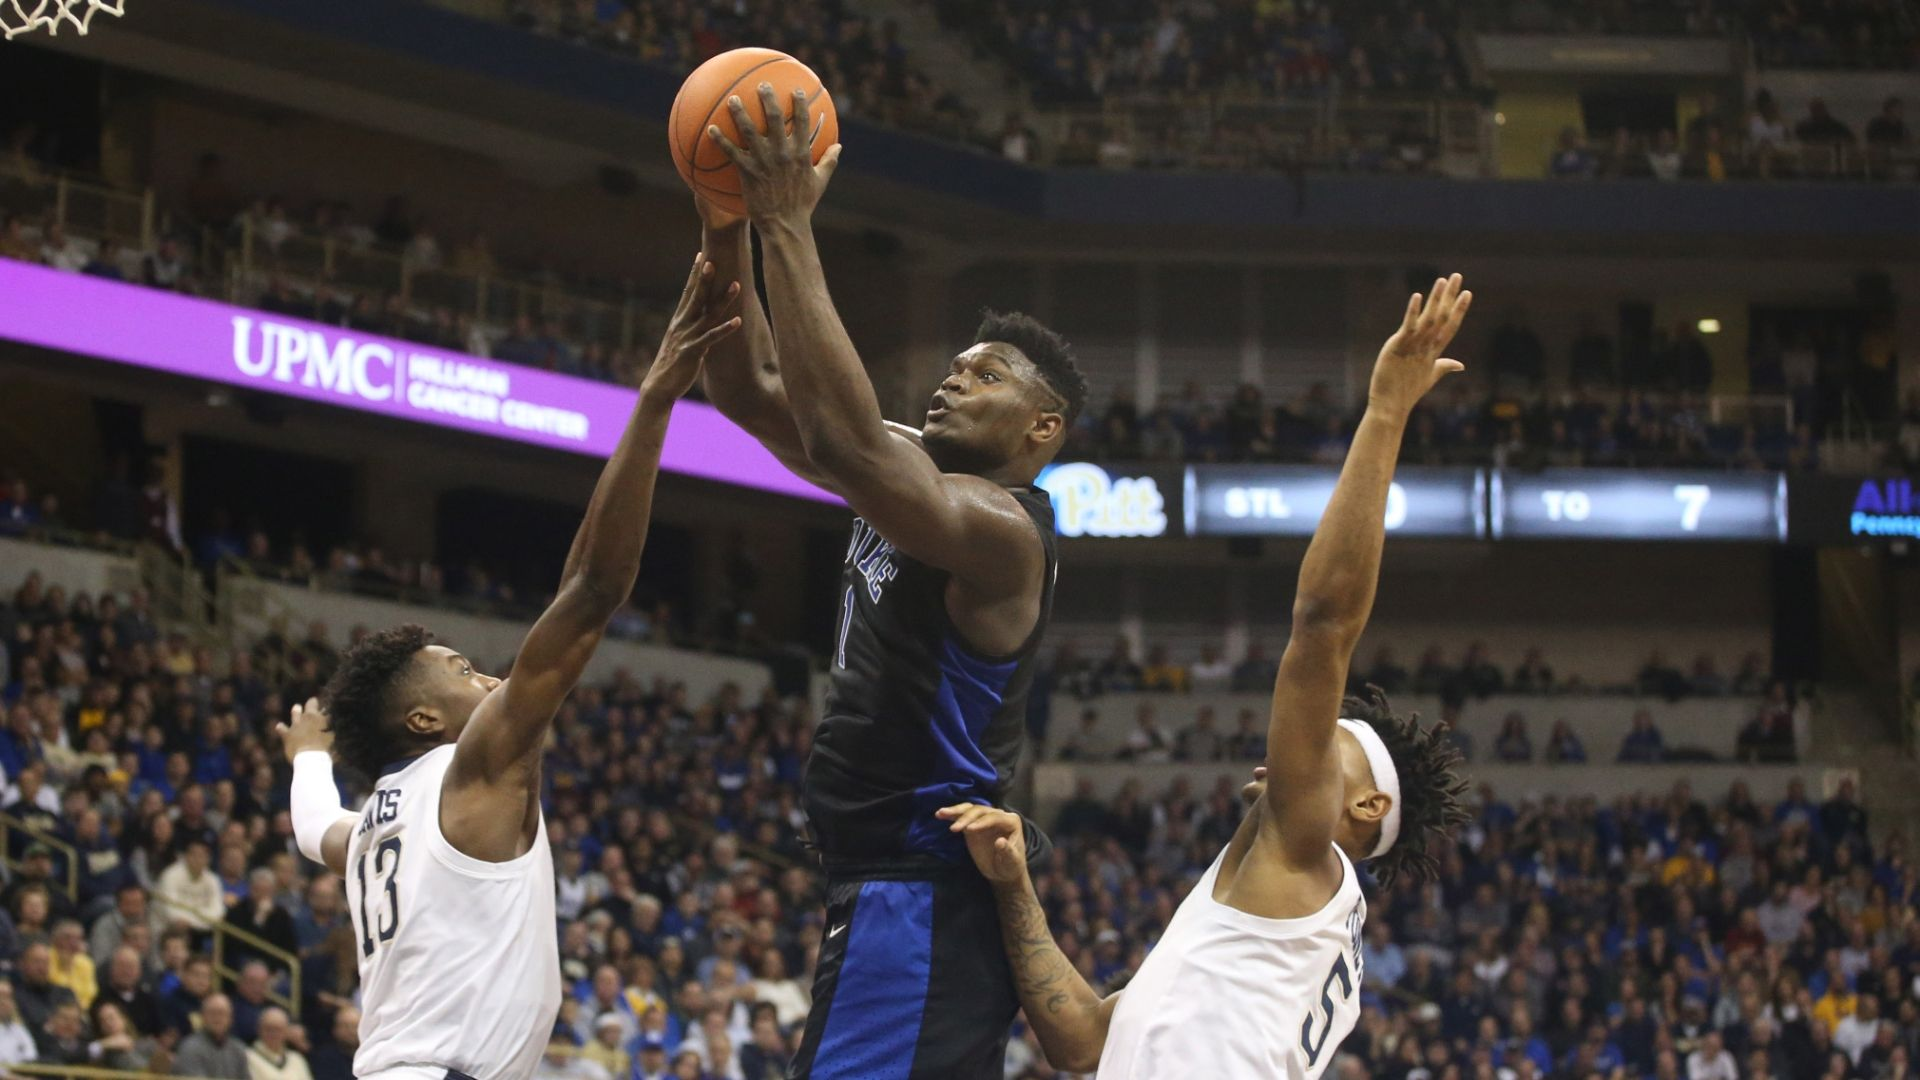 Williamson scores 25, No. 2 Duke shuts down Pitt 79-64